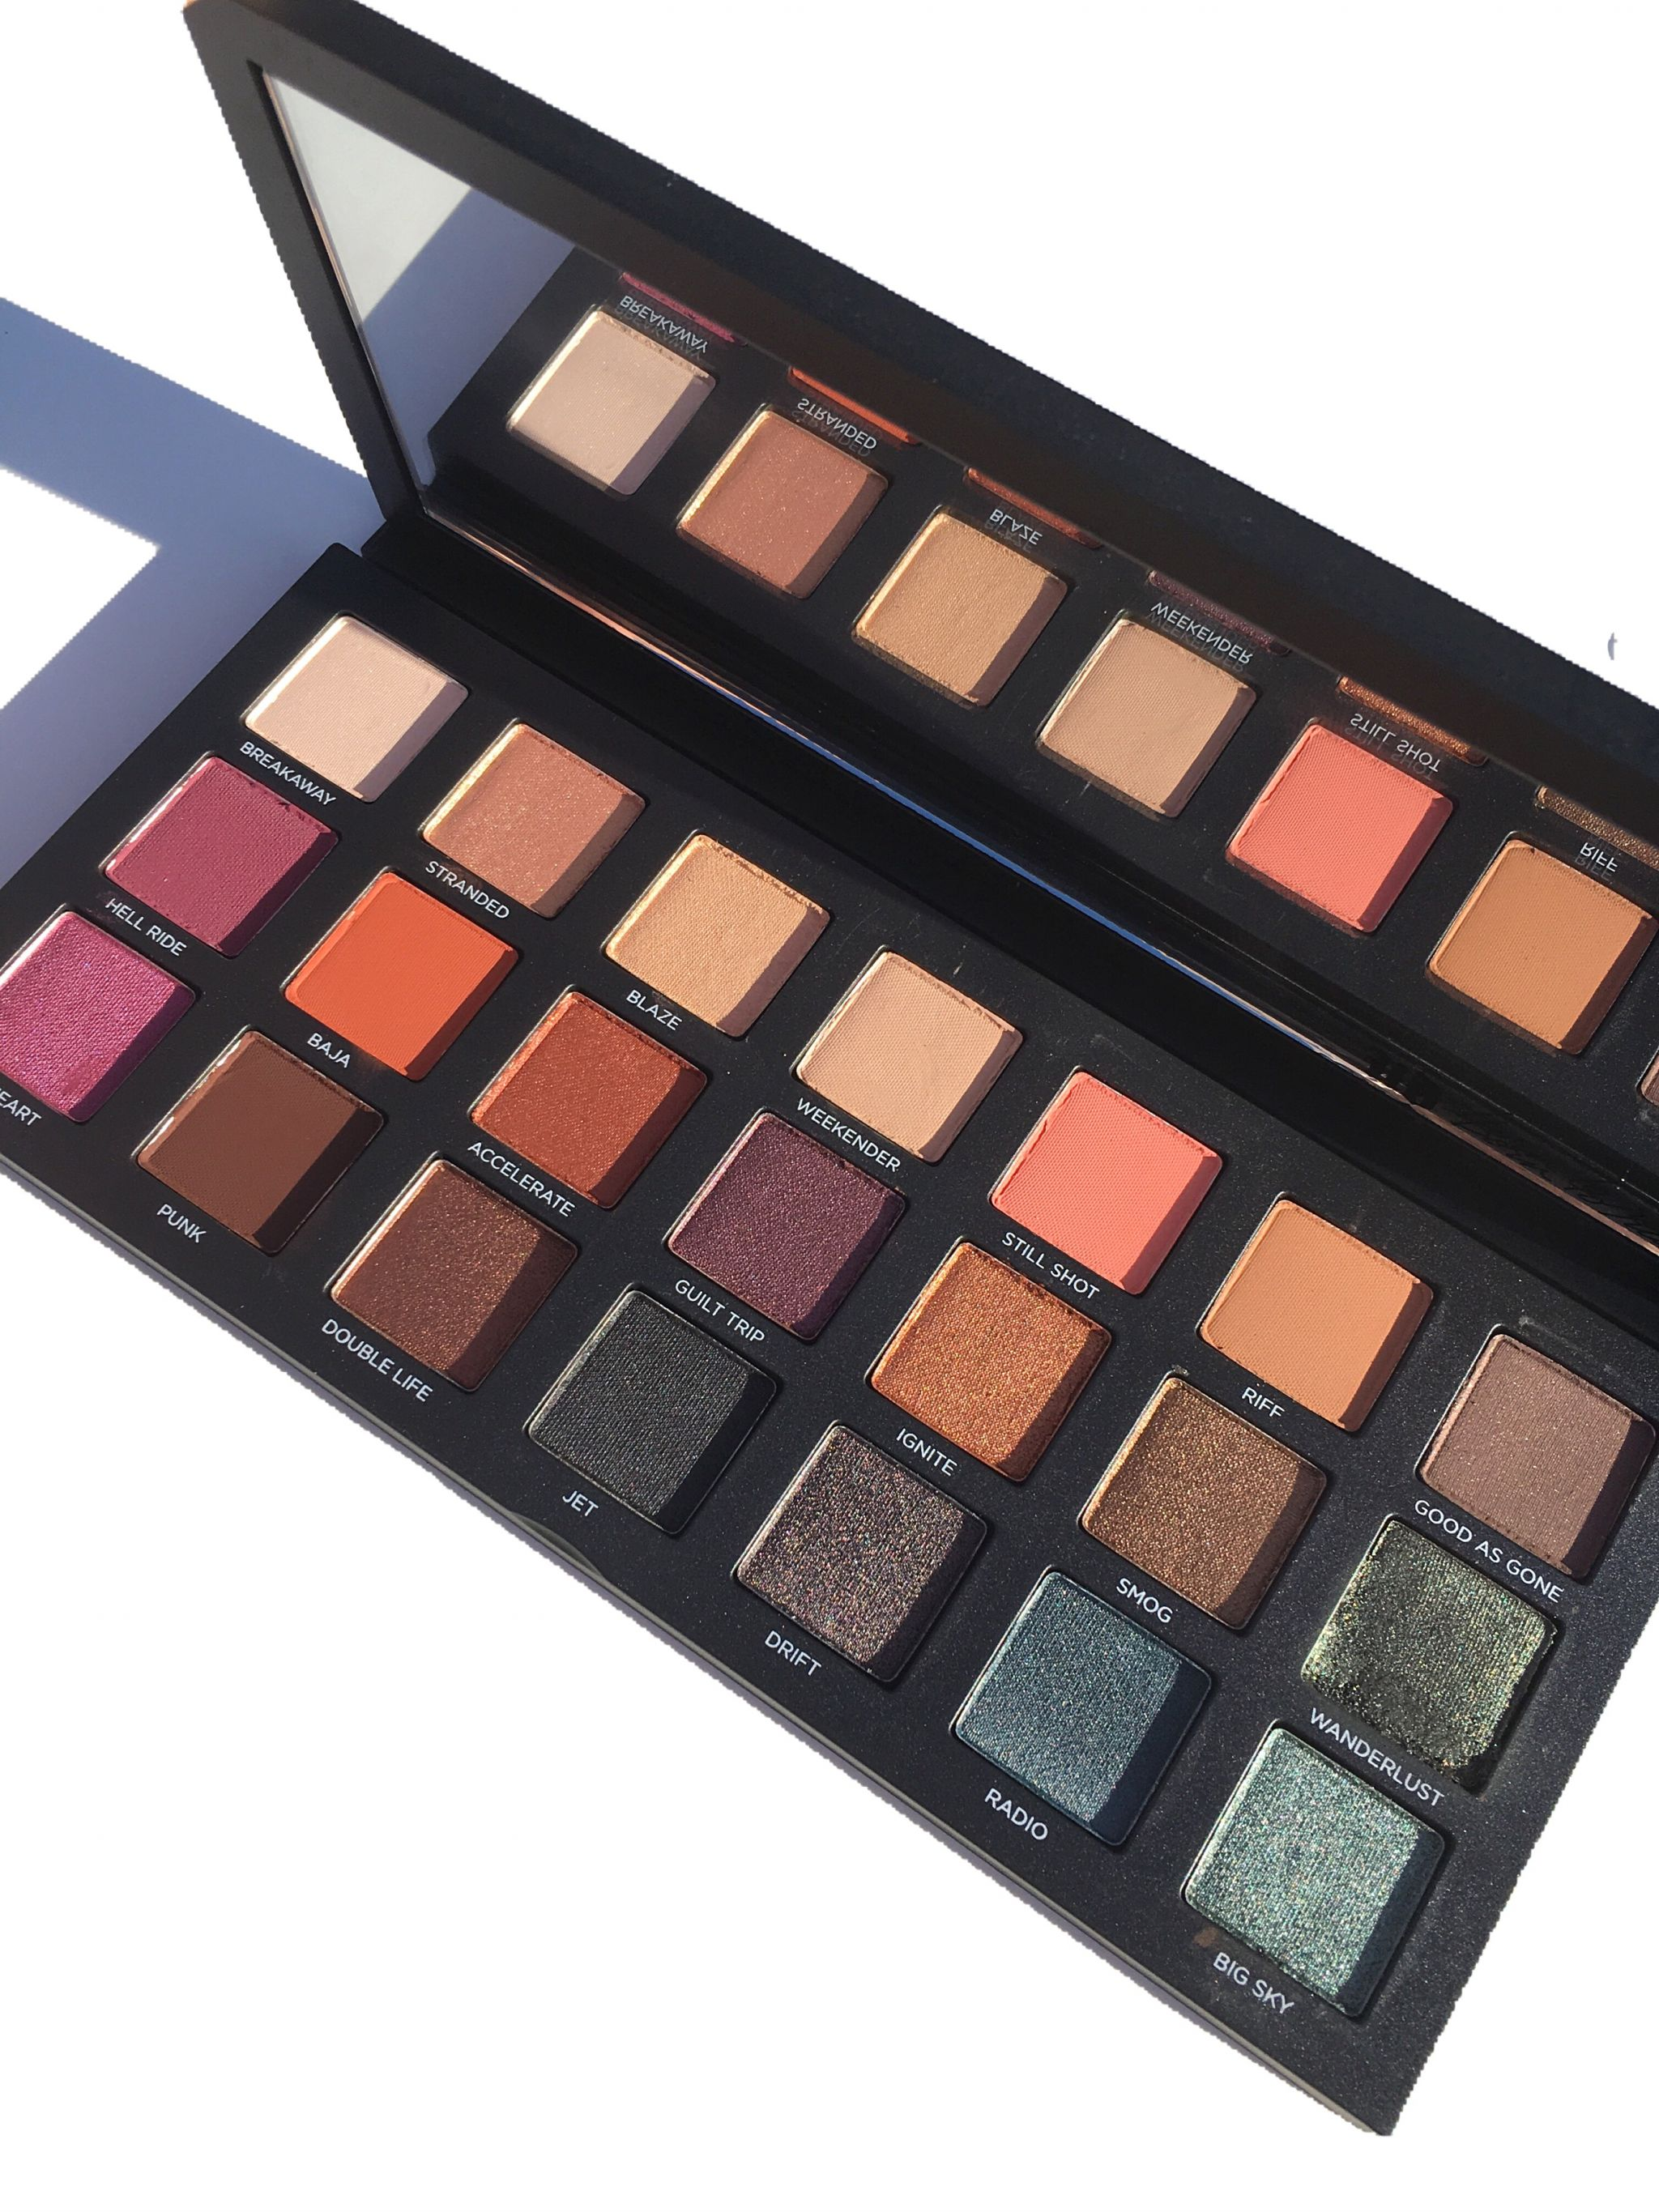 Game Of Thrones Eyeshadow Palette by Urban Decay #18